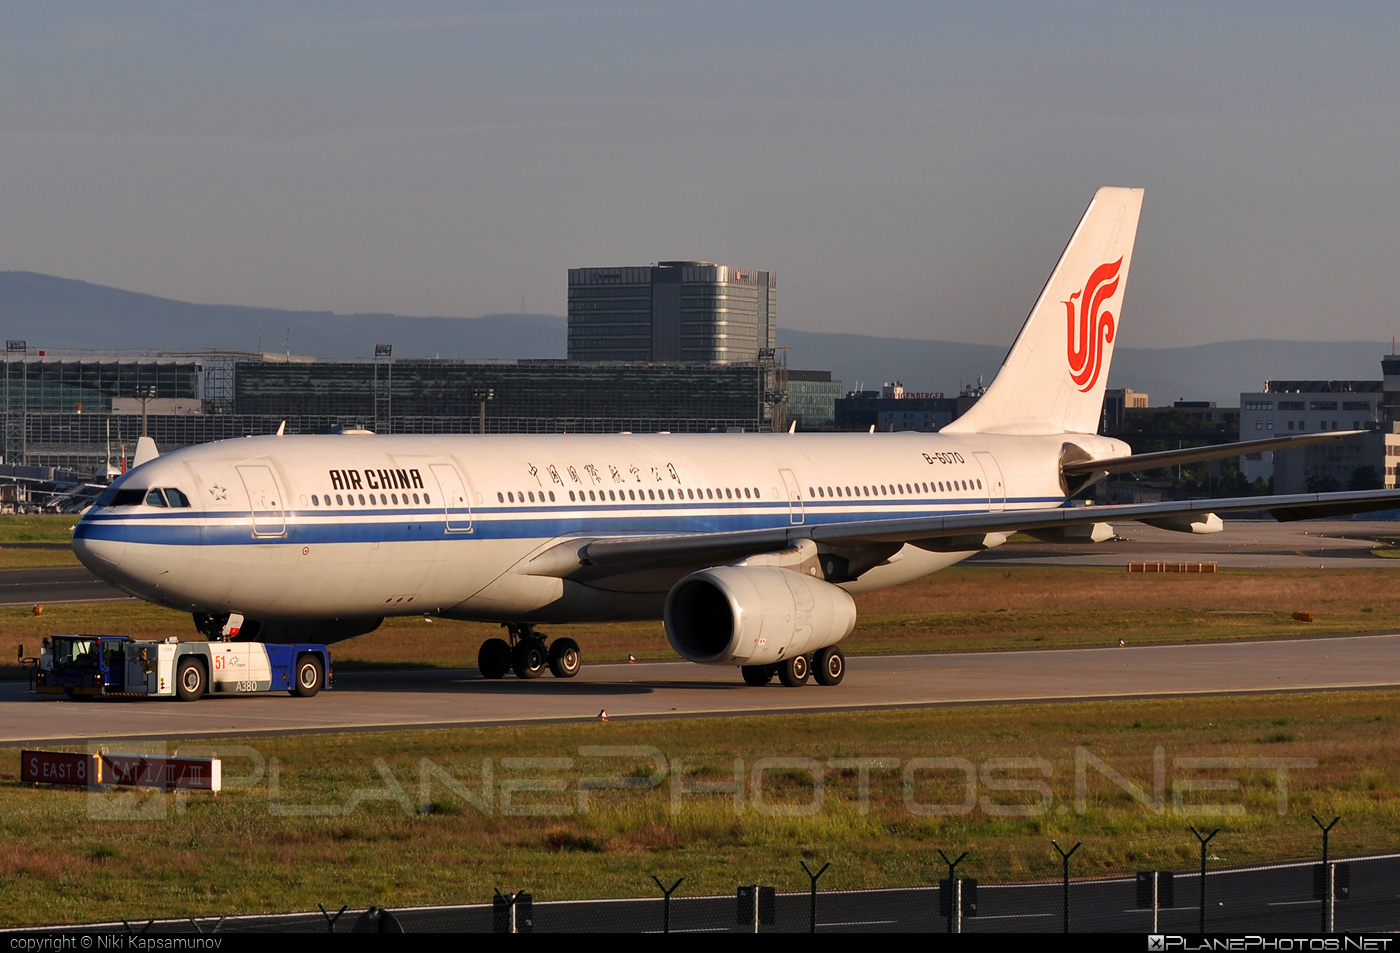 Airbus A330-243 - B-6070 operated by Air China #a330 #a330family #airbus #airbus330 #airchina